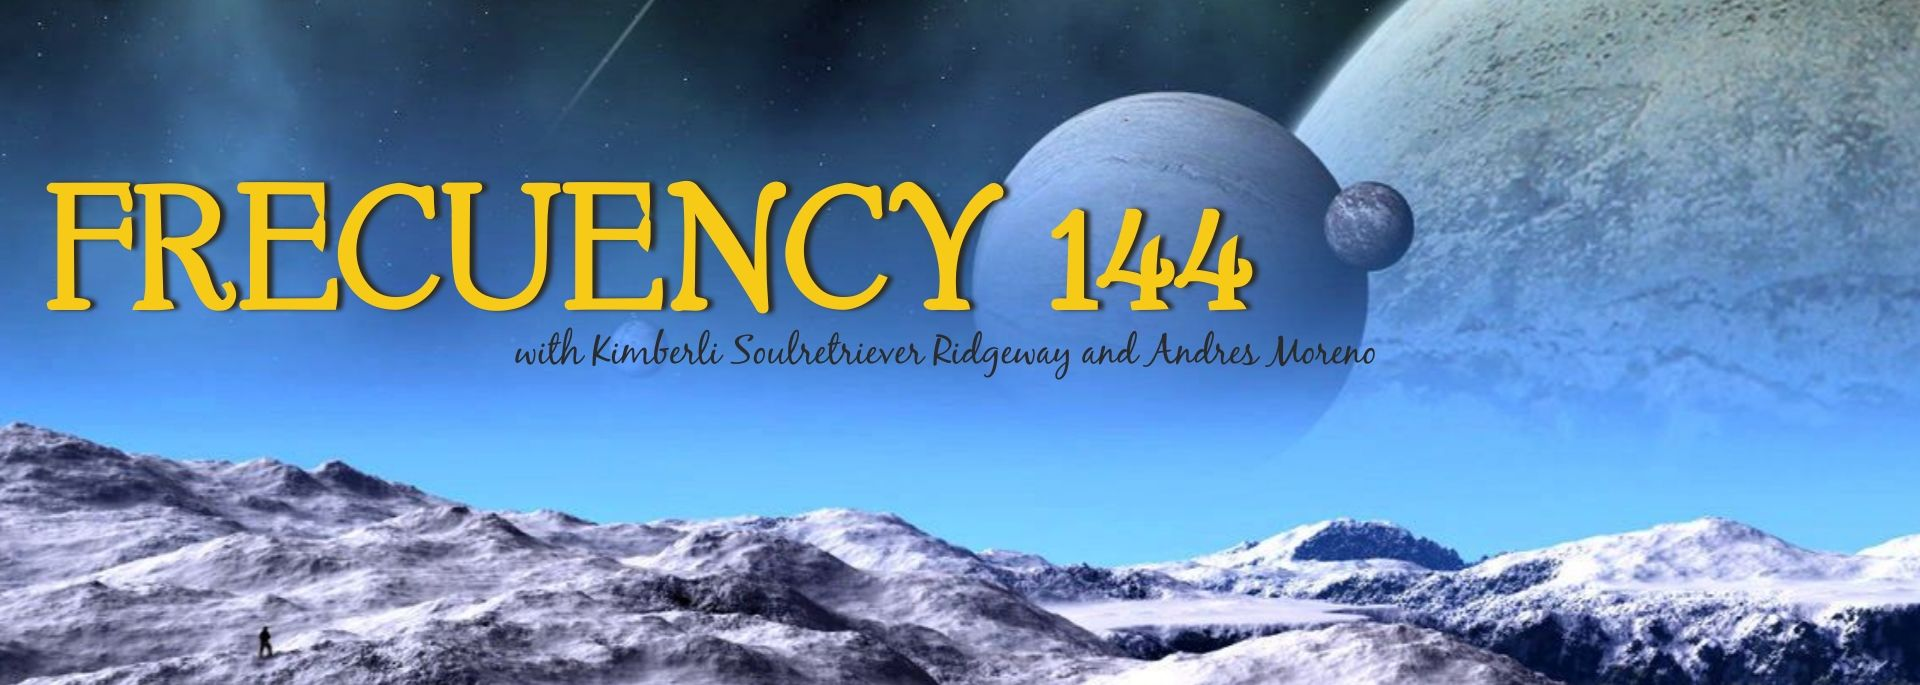 FRECUENCY144